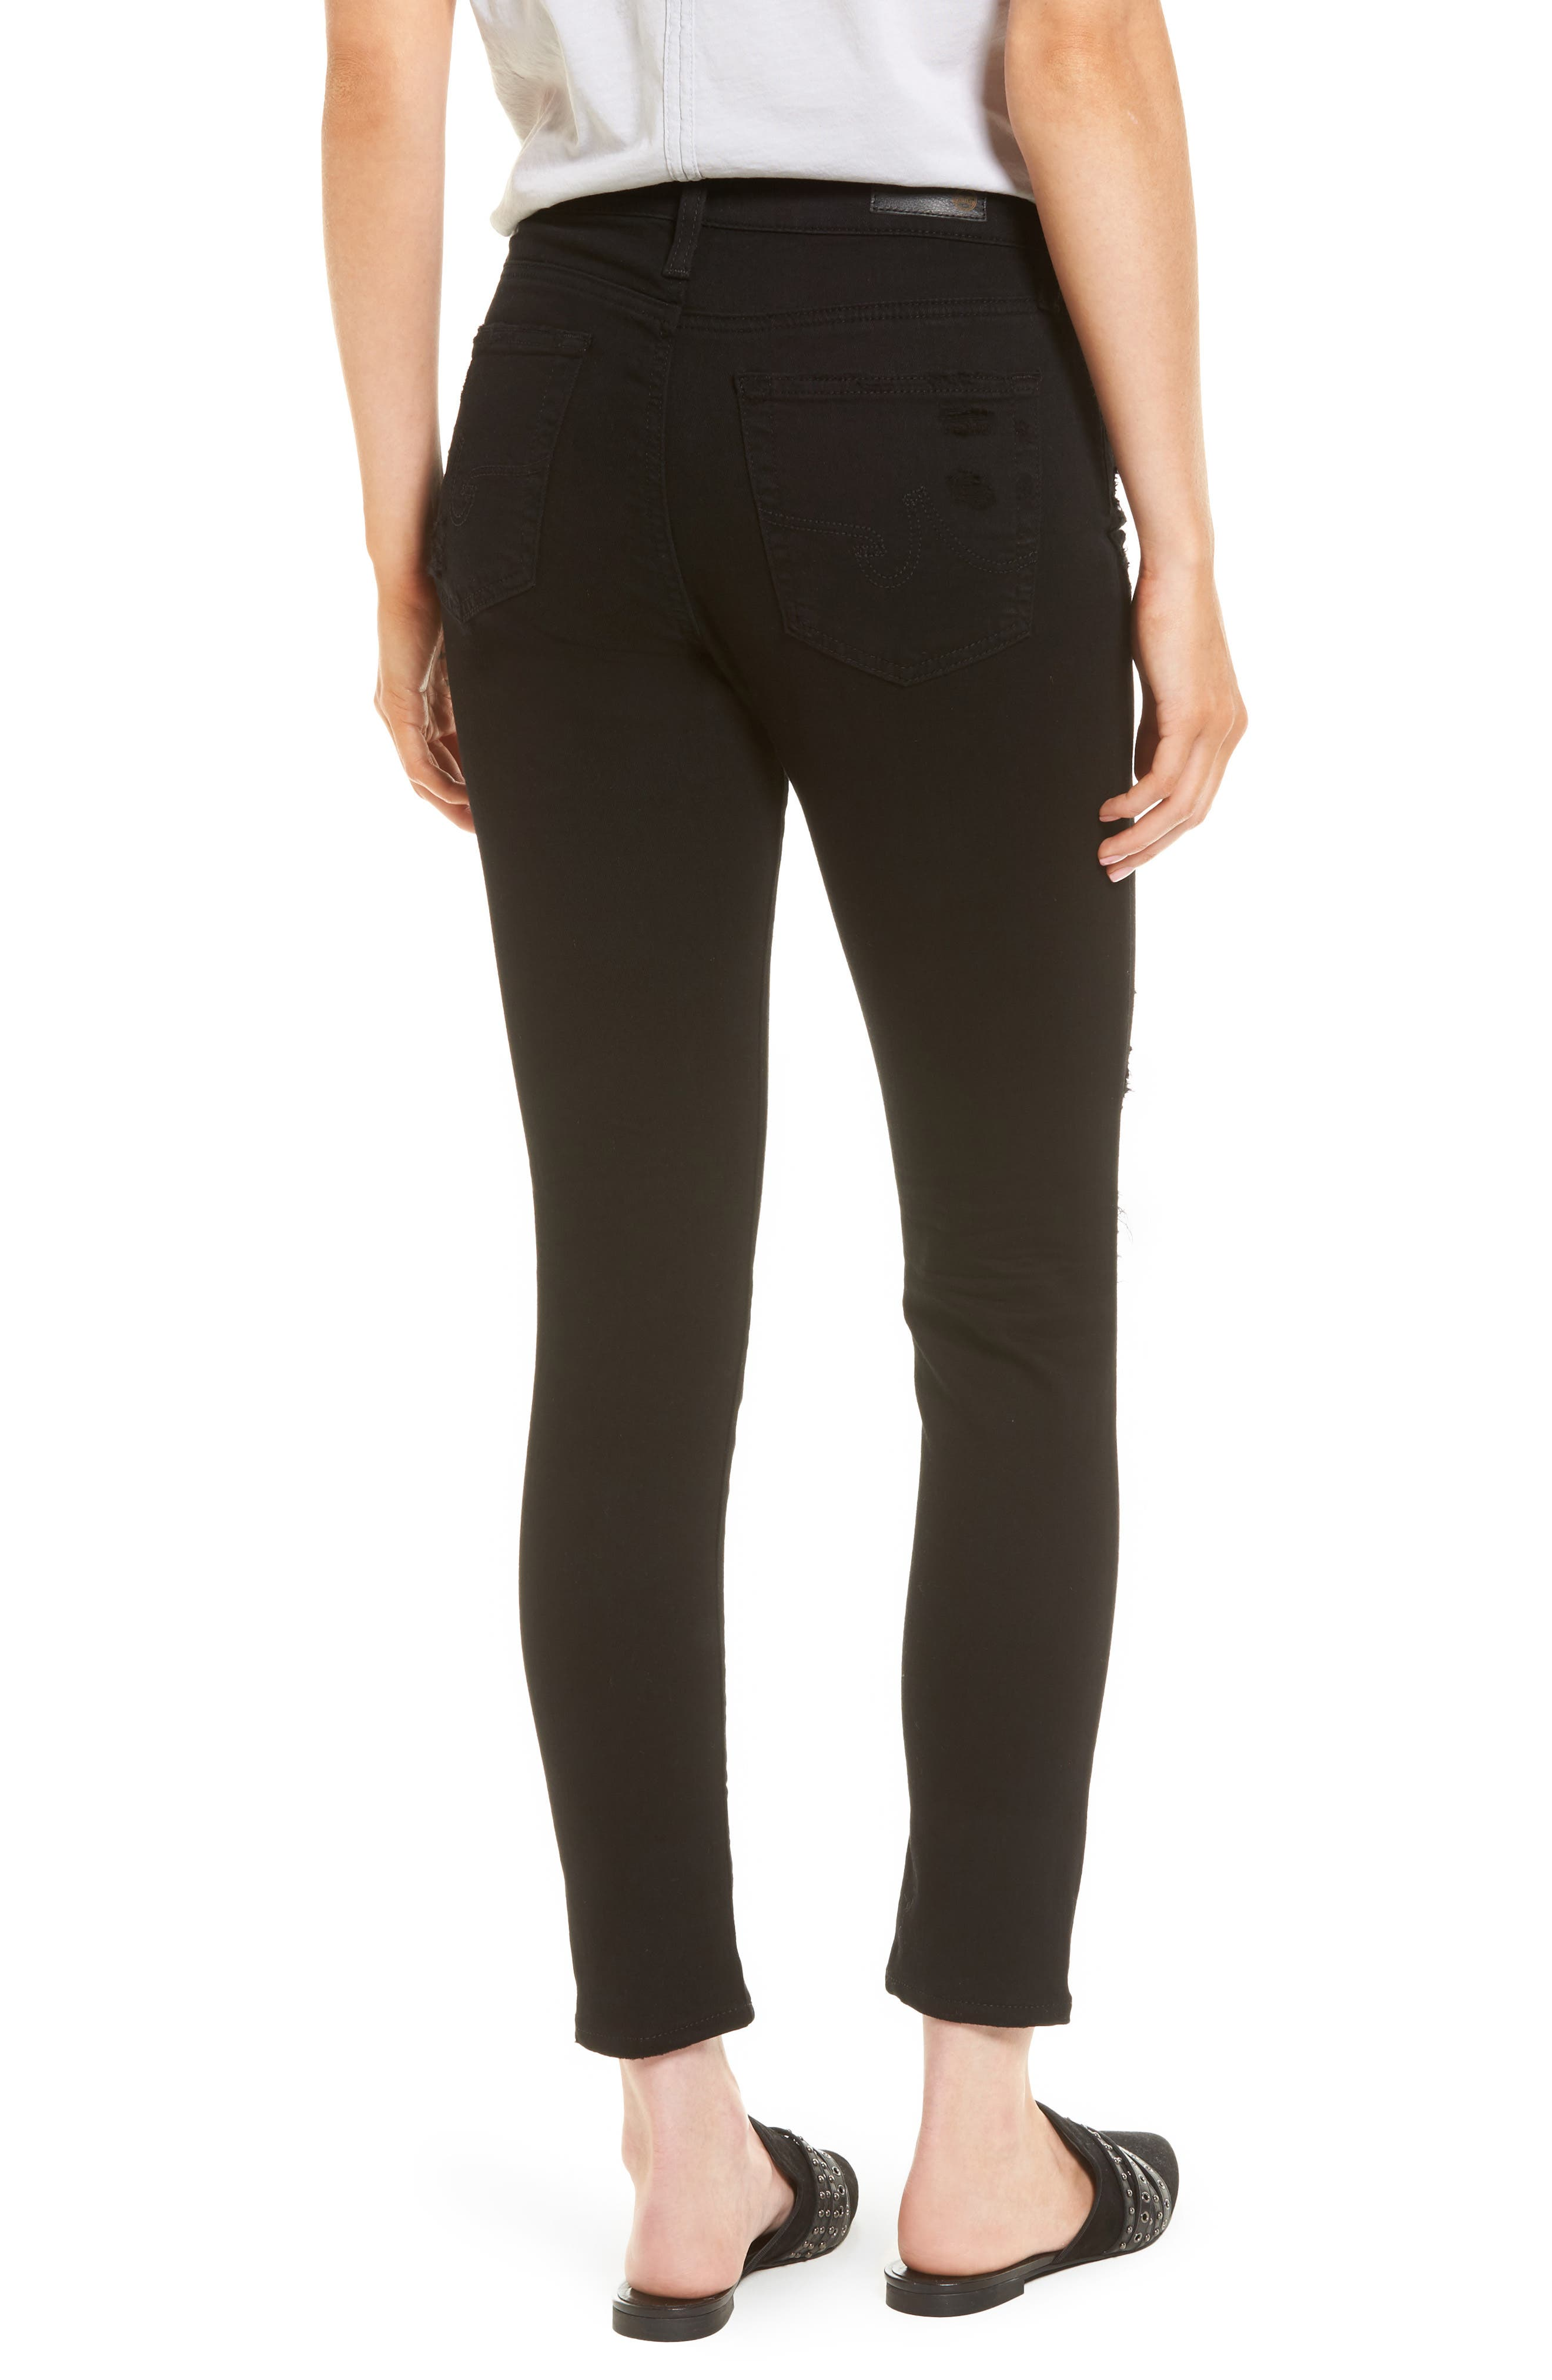 The Farrah High Waist Ankle Skinny Faux Leather Pants,                             Alternate thumbnail 2, color,                             5 Years Black Destructed